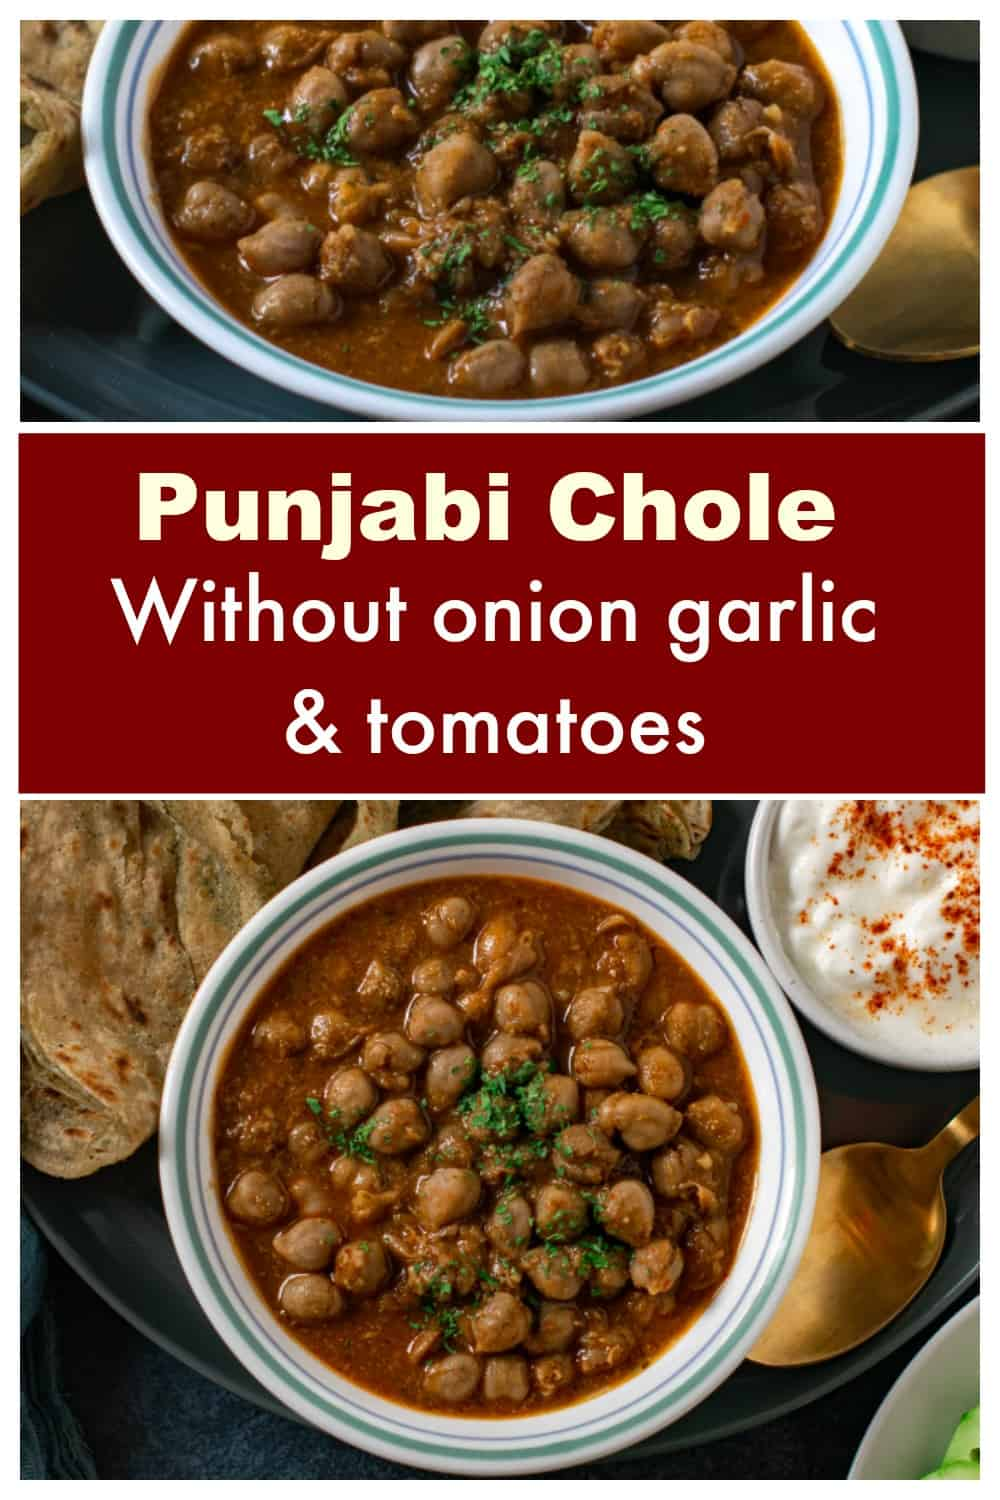 Punjabi chole without onion garlic and tomatoes on a plate